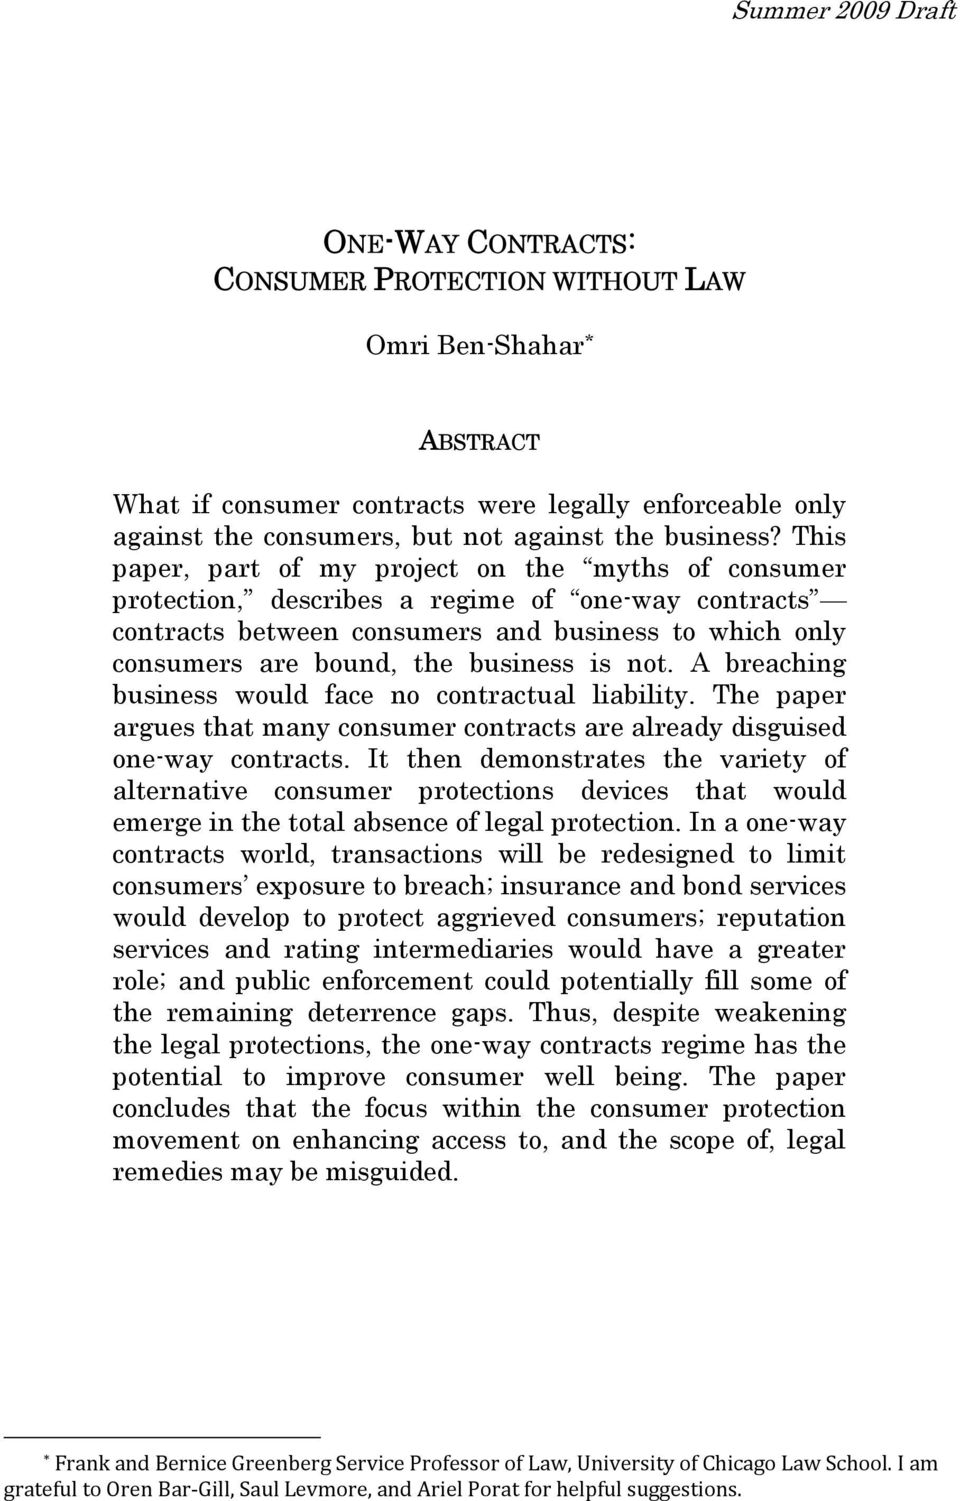 This paper, part of my project on the myths of consumer protection, describes a regime of one-way contracts contracts between consumers and business to which only consumers are bound, the business is